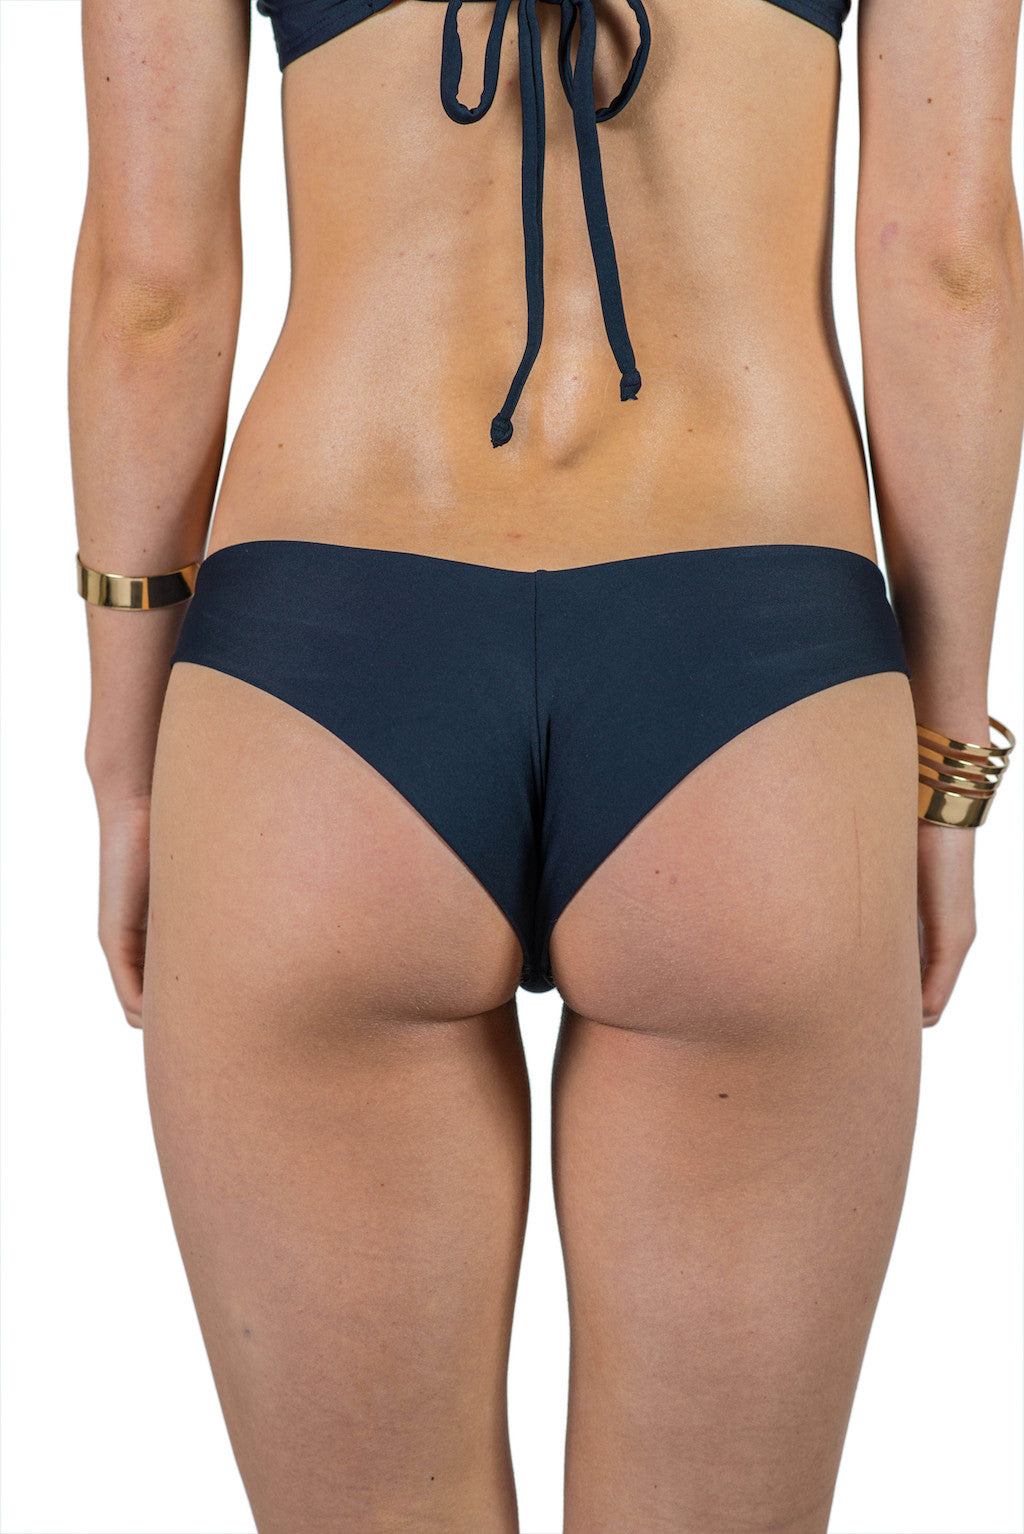 Rio Swim Cheeky Seamless Bottoms - Rio Swim, Bikinis, Swimwear